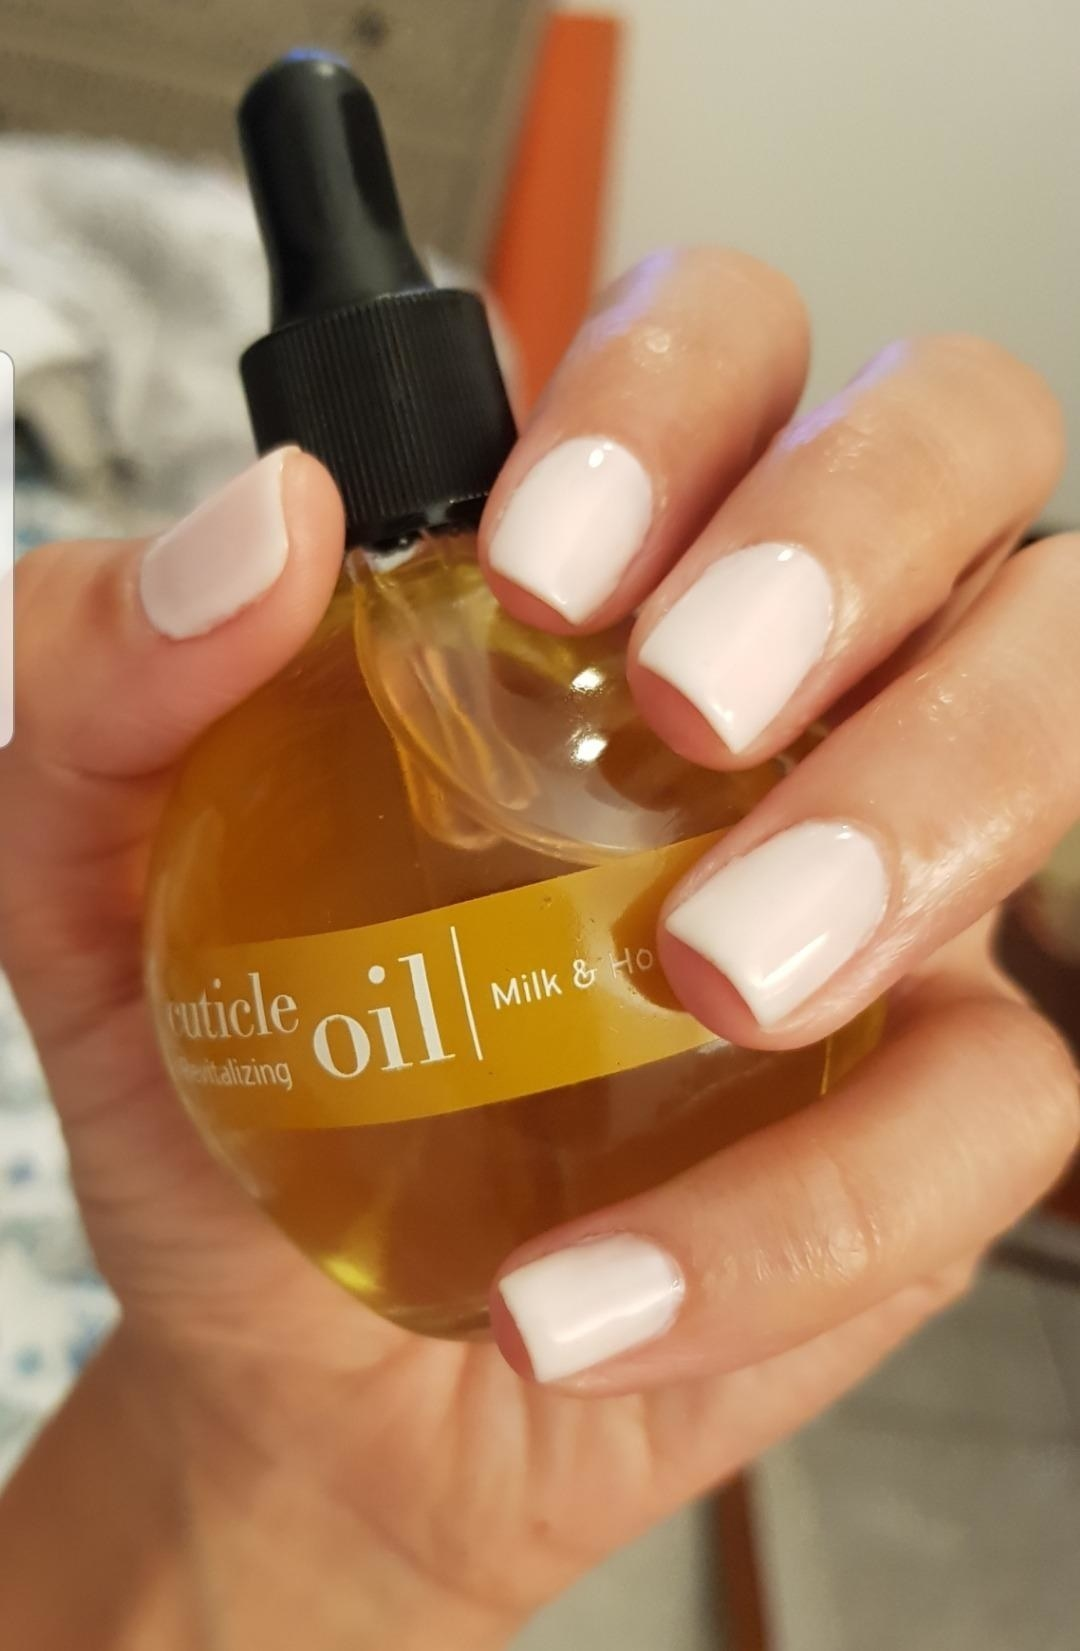 reviewer photo of clean and healthy nail beds painted light pink holding the cuticle oil